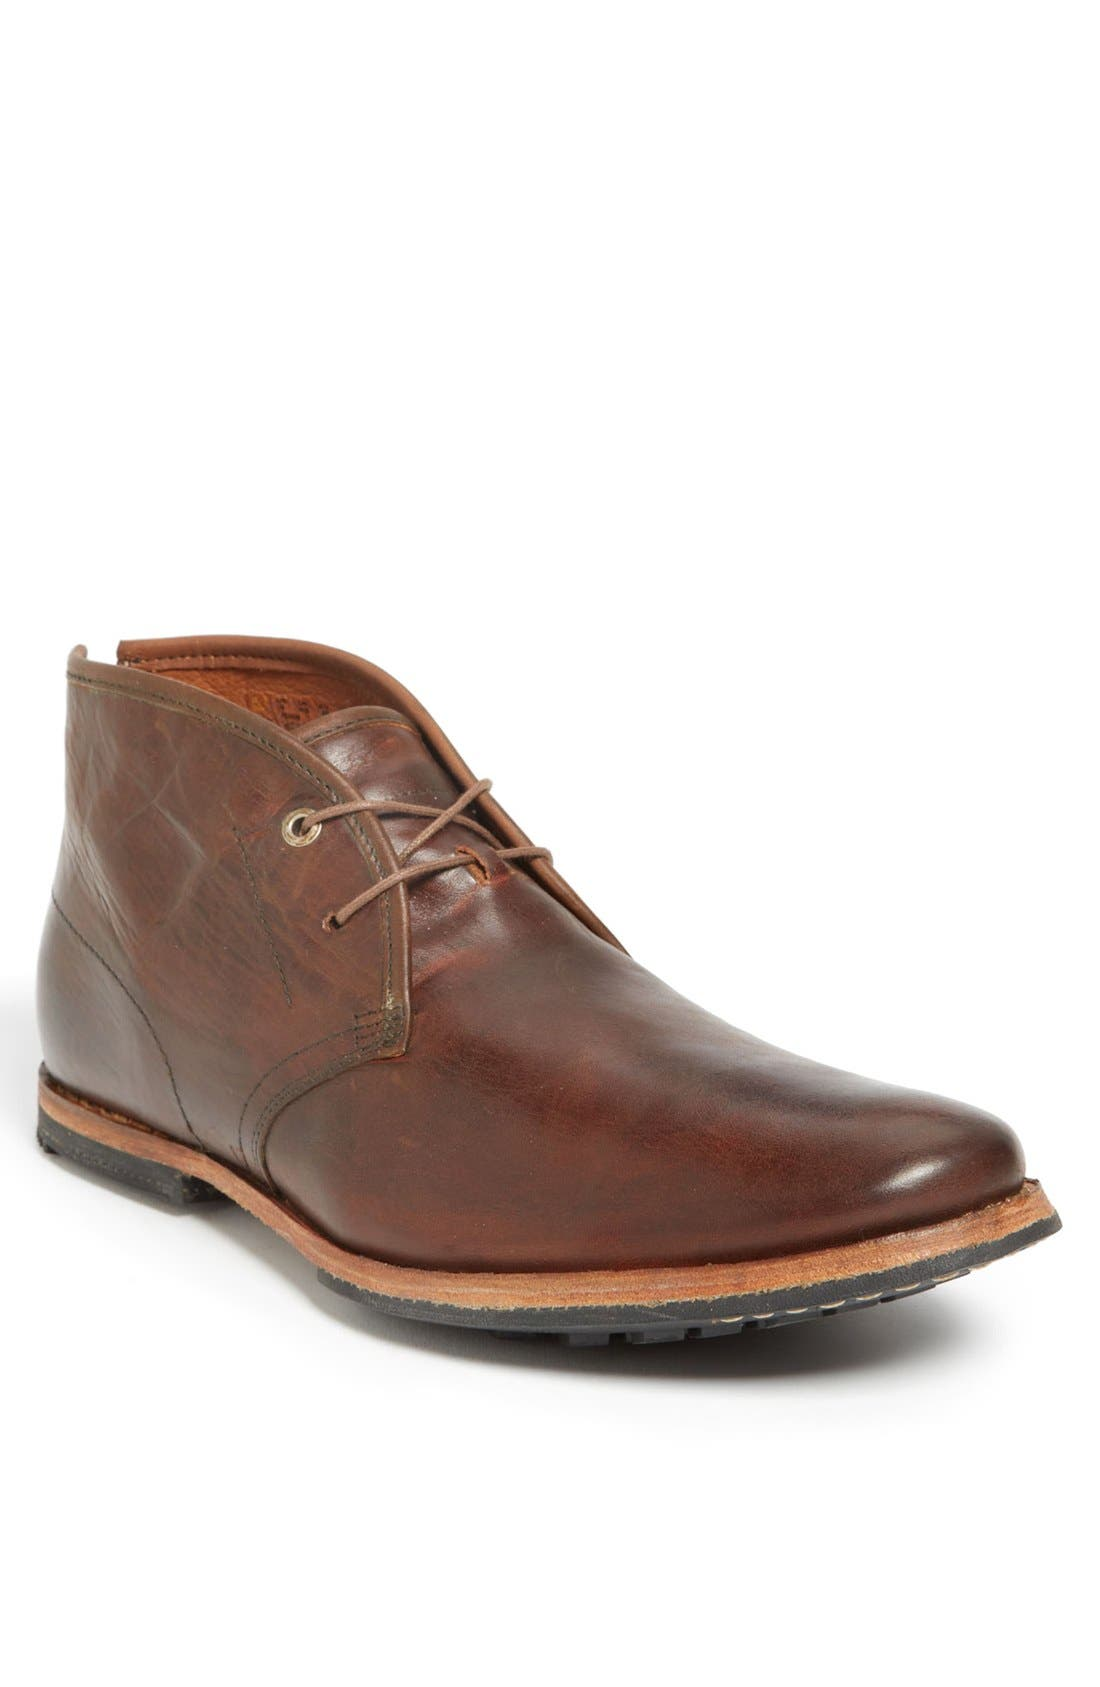 Men's Brown Chukka Boots | Nordstrom